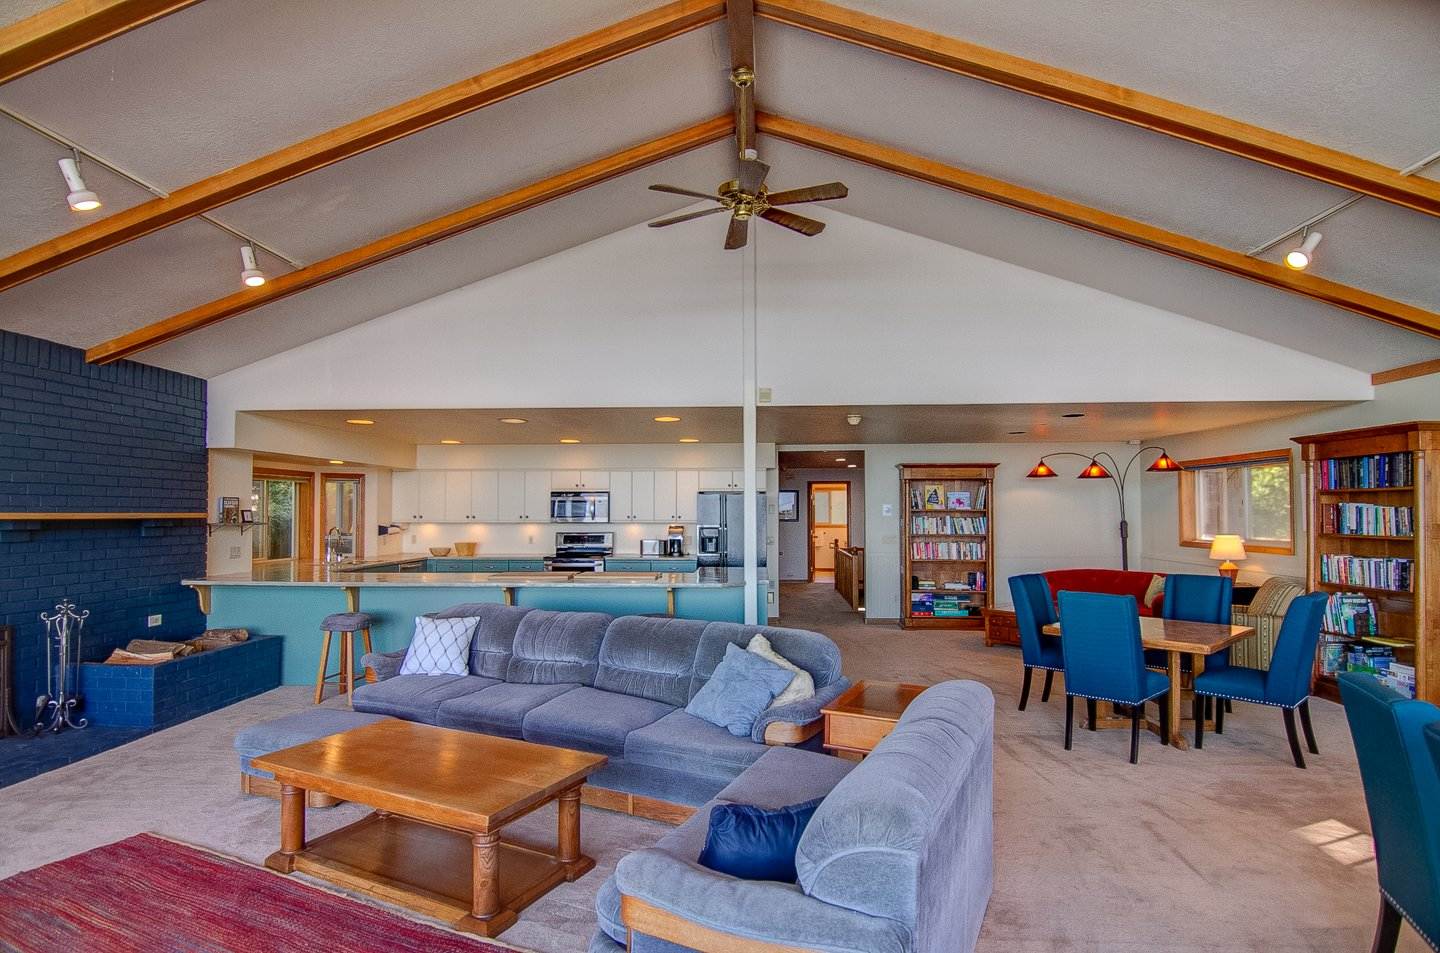 The open concept is perfect for your friends and family to spend time together.